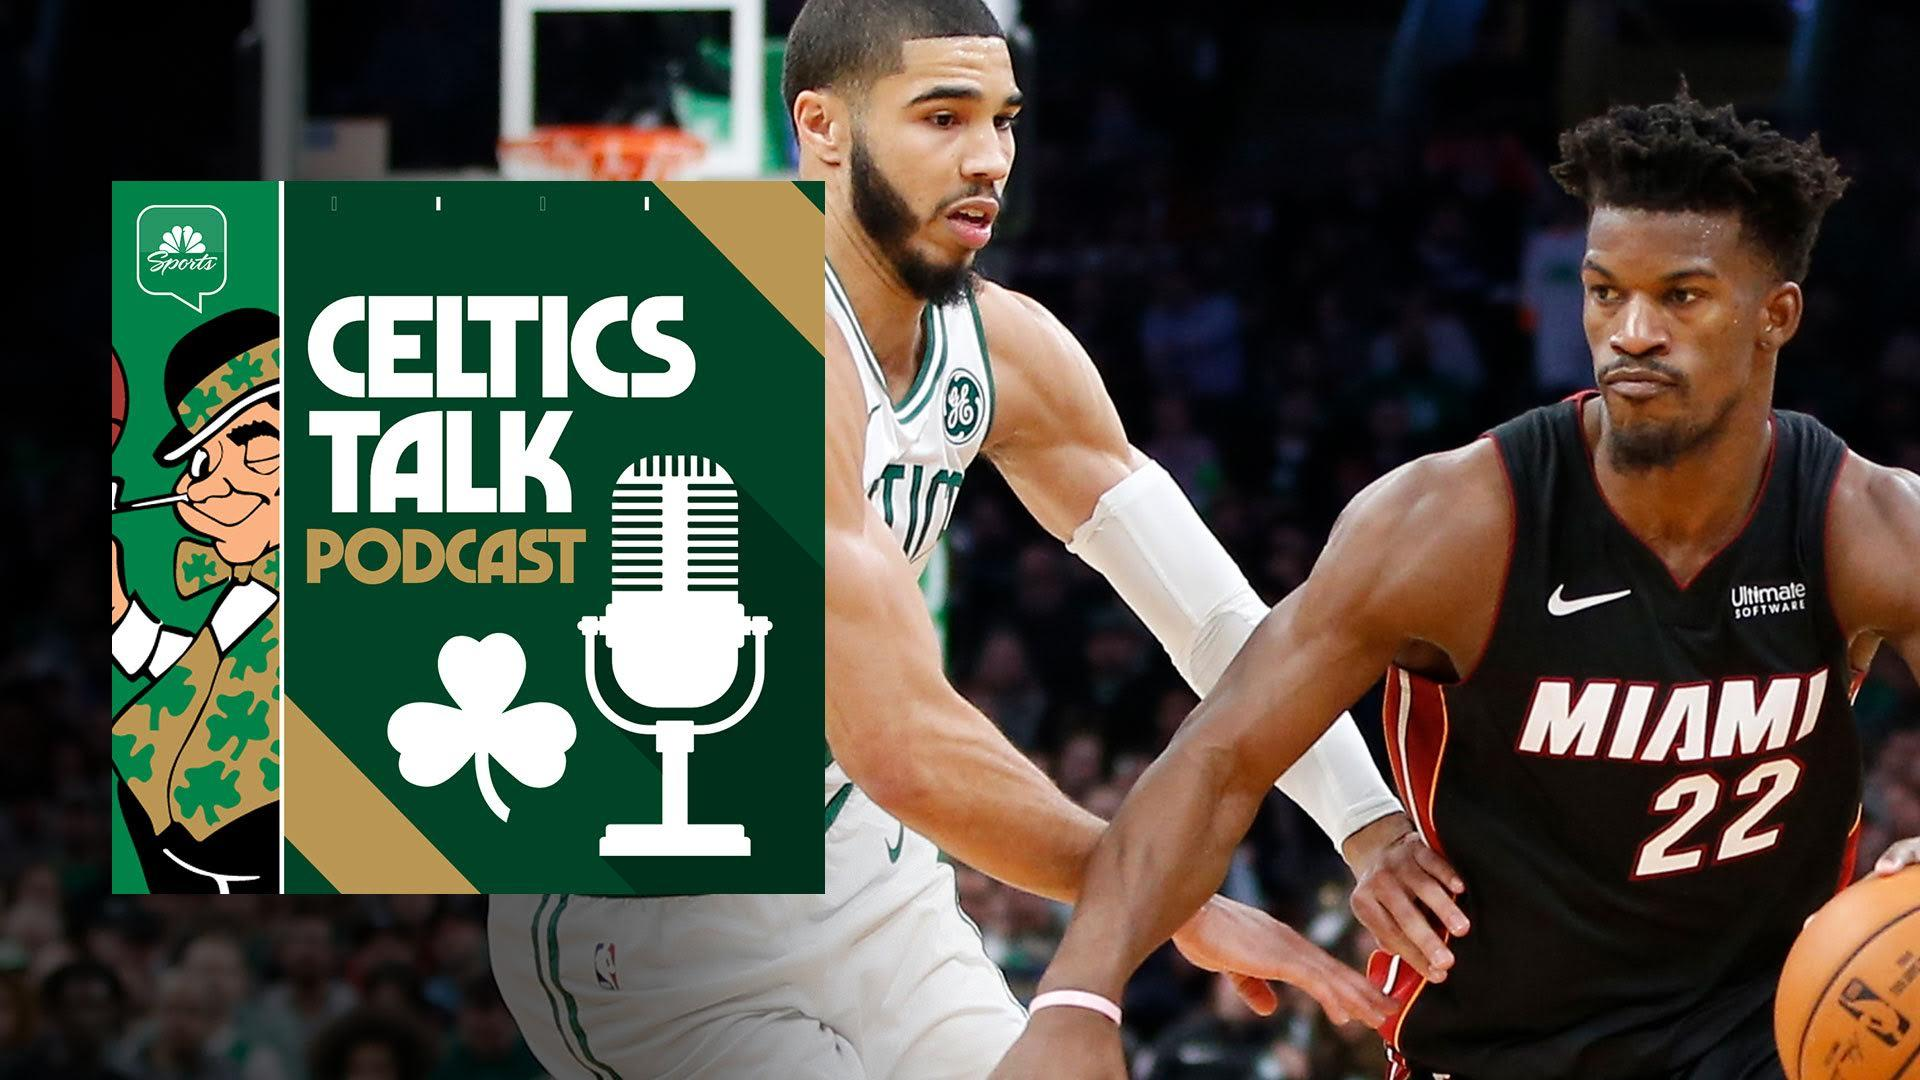 Celtics Talk Podcast Why Tom Haberstroh Is Taking The Heat Over The C S